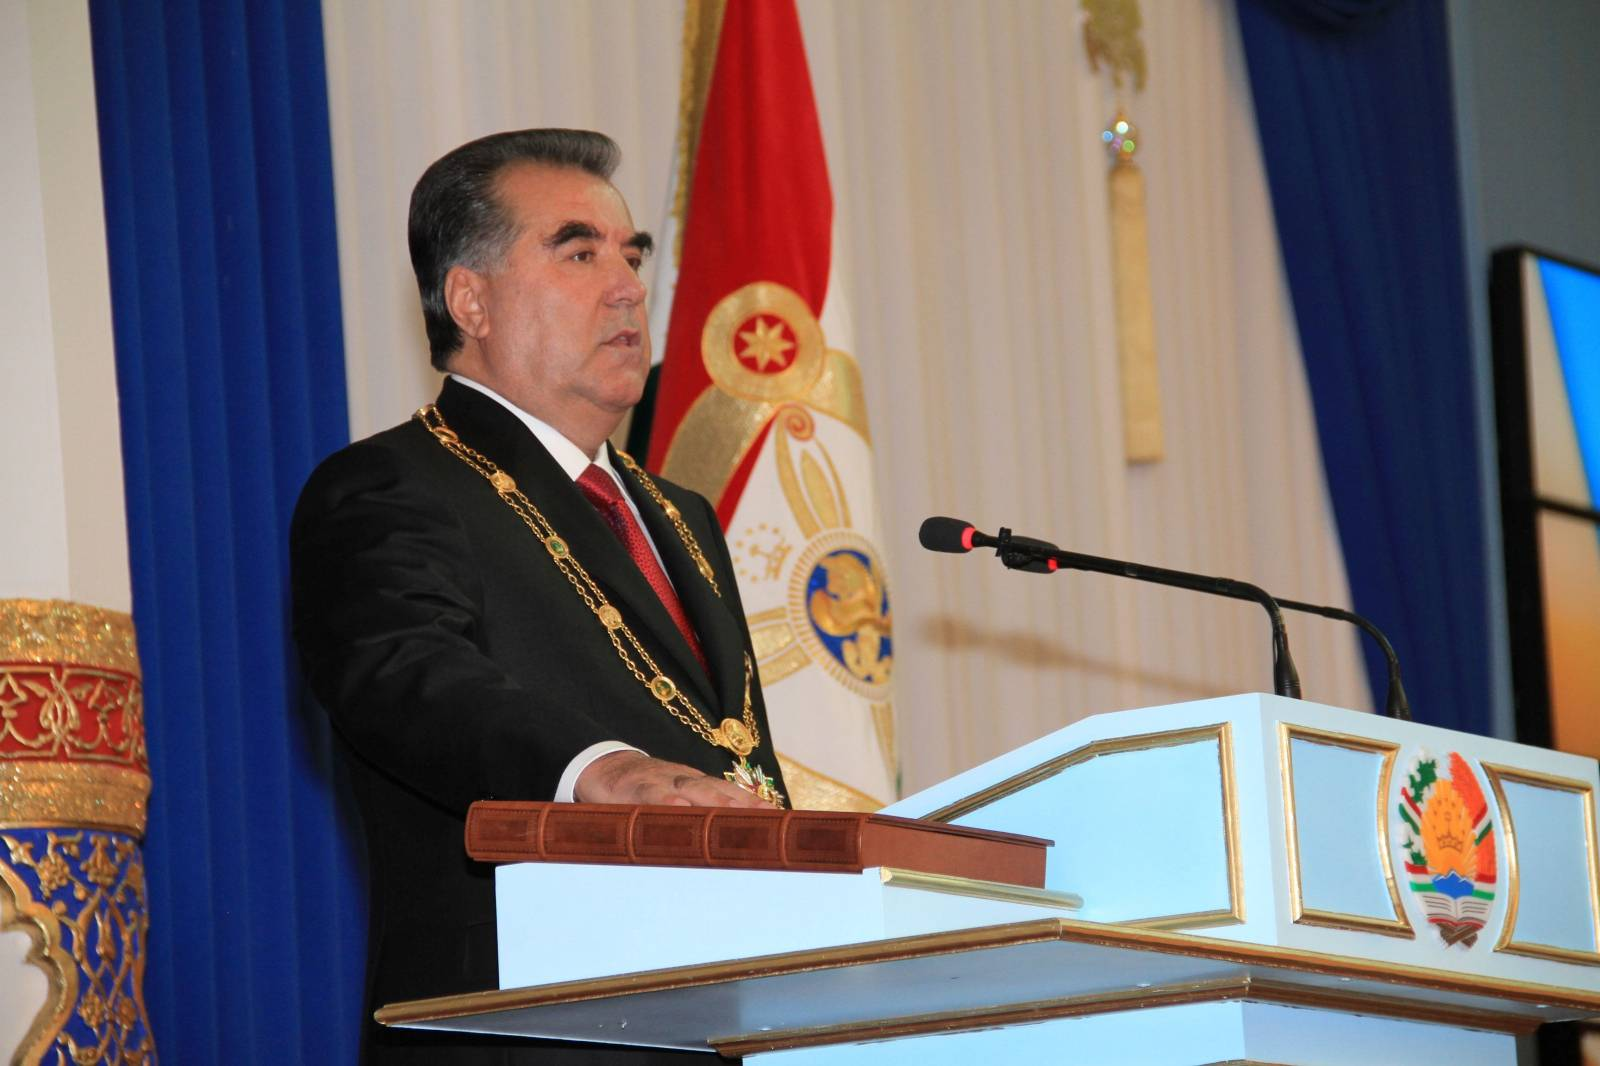 FILE PHOTO: Tajikistan's President Rakhmon takes oath during his inauguration ceremony in Dushanbe